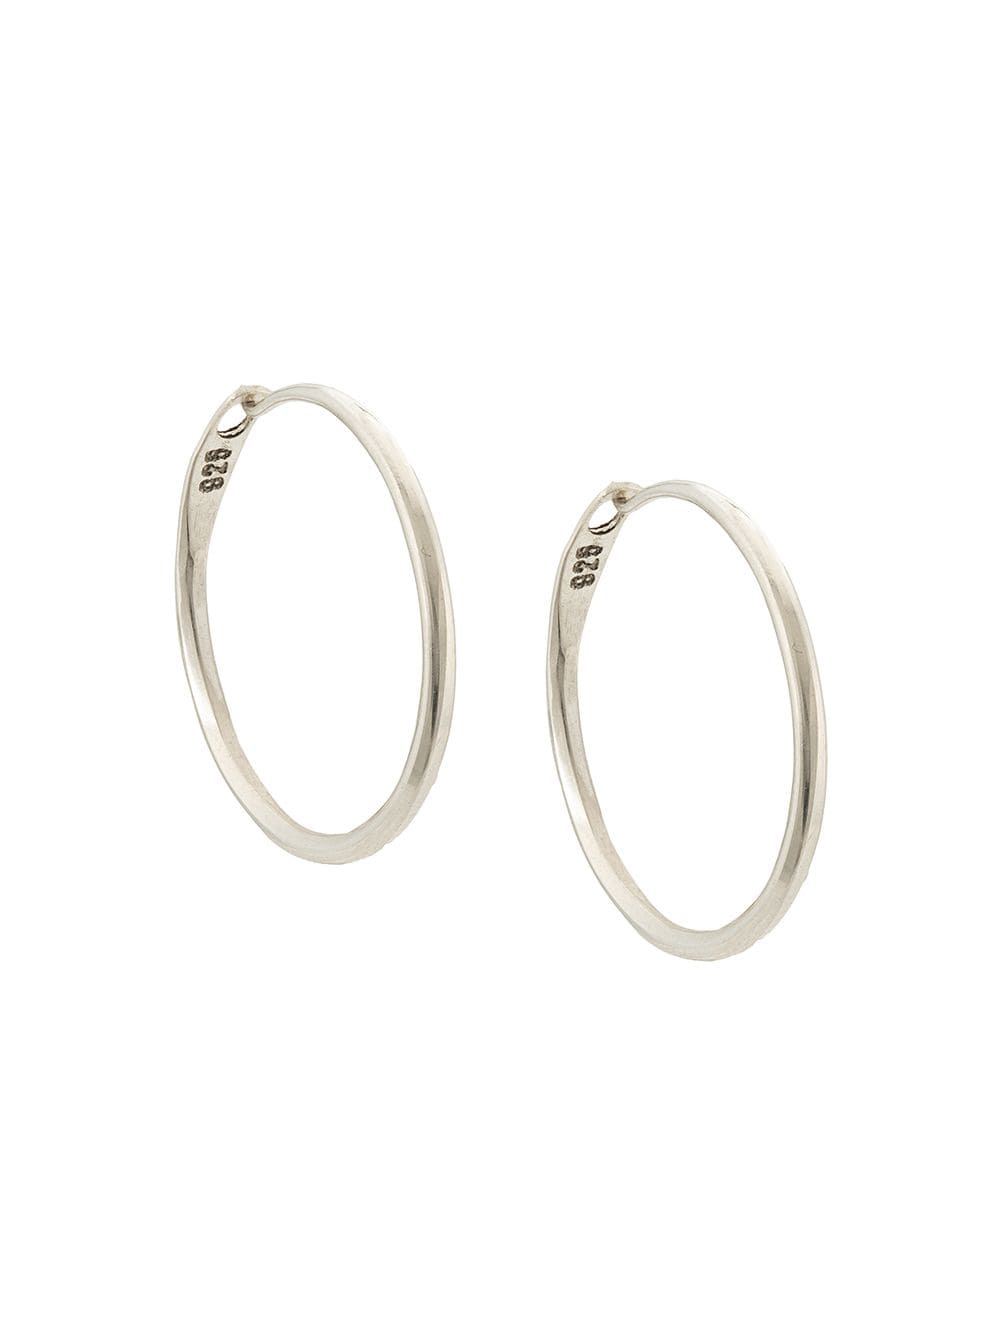 WERKSTATT MUNCHEN HOOP EARRINGS SUPER FINE M4501